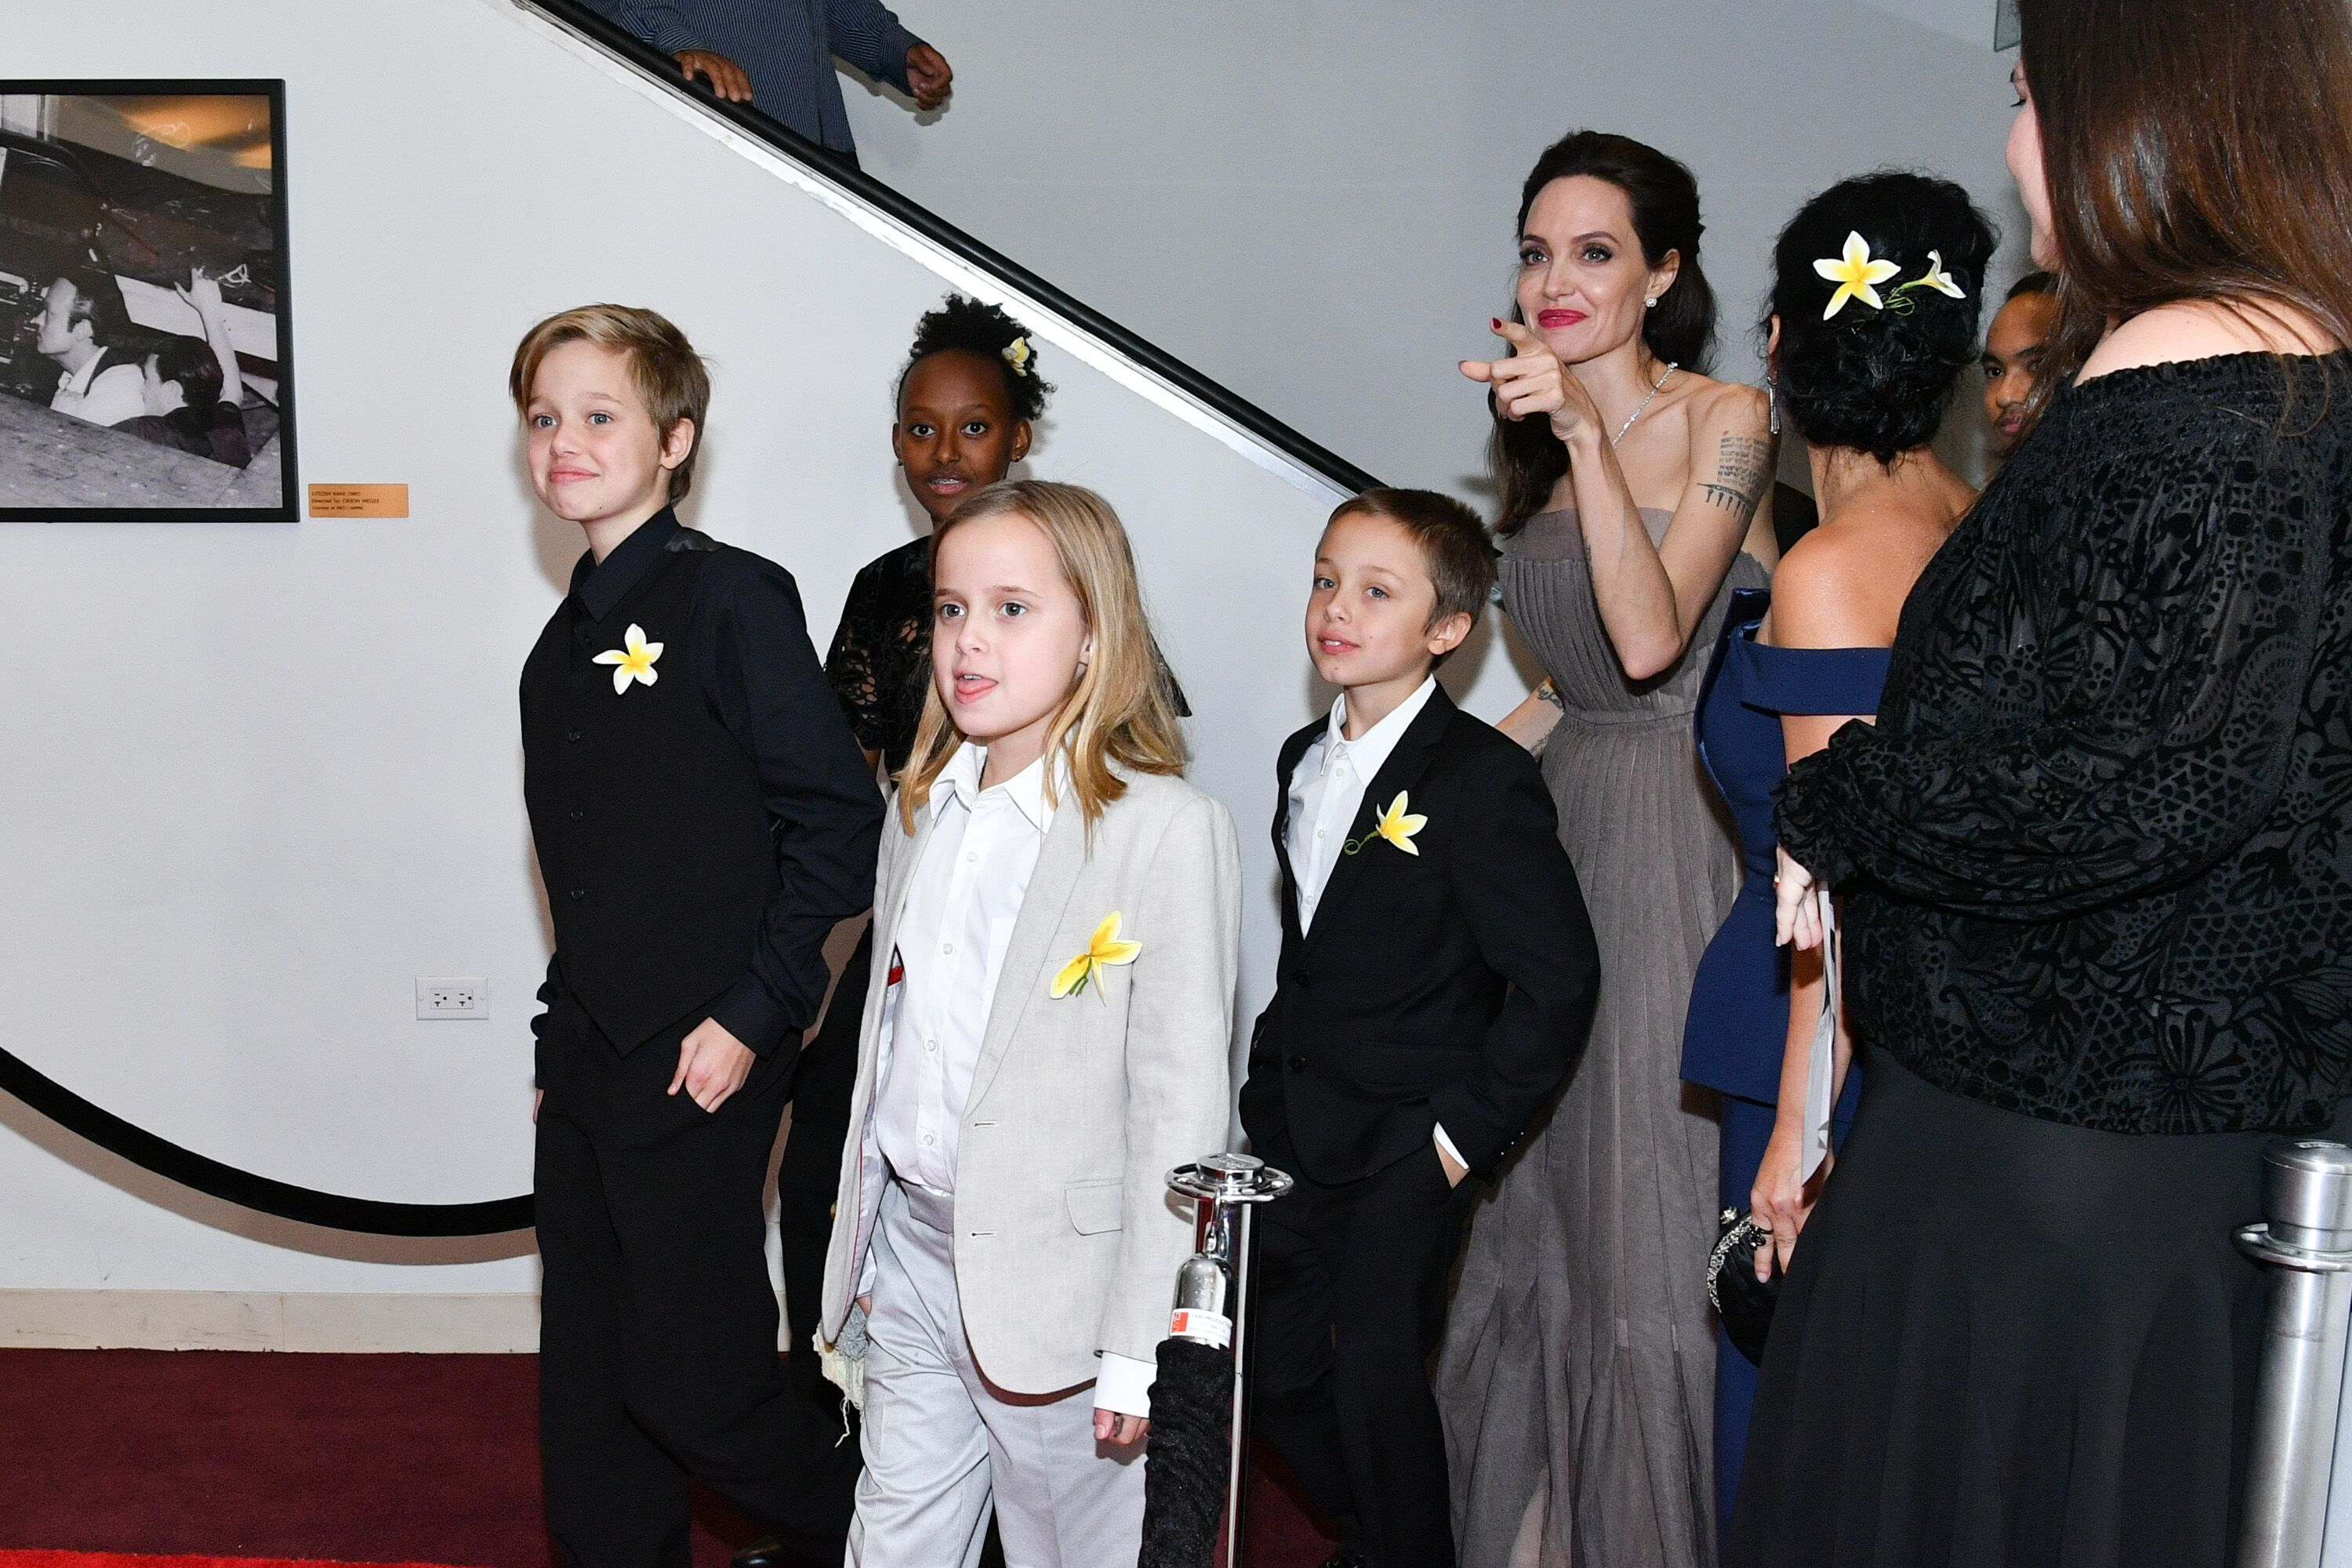 """Shiloh Jolie-Pitt, Zahara Jolie-Pitt, Vivienne Jolie-Pitt, Knox Leon Jolie-Pitt, and Angelina Jolie attend the """"First They Killed My Father"""" New York premiere 